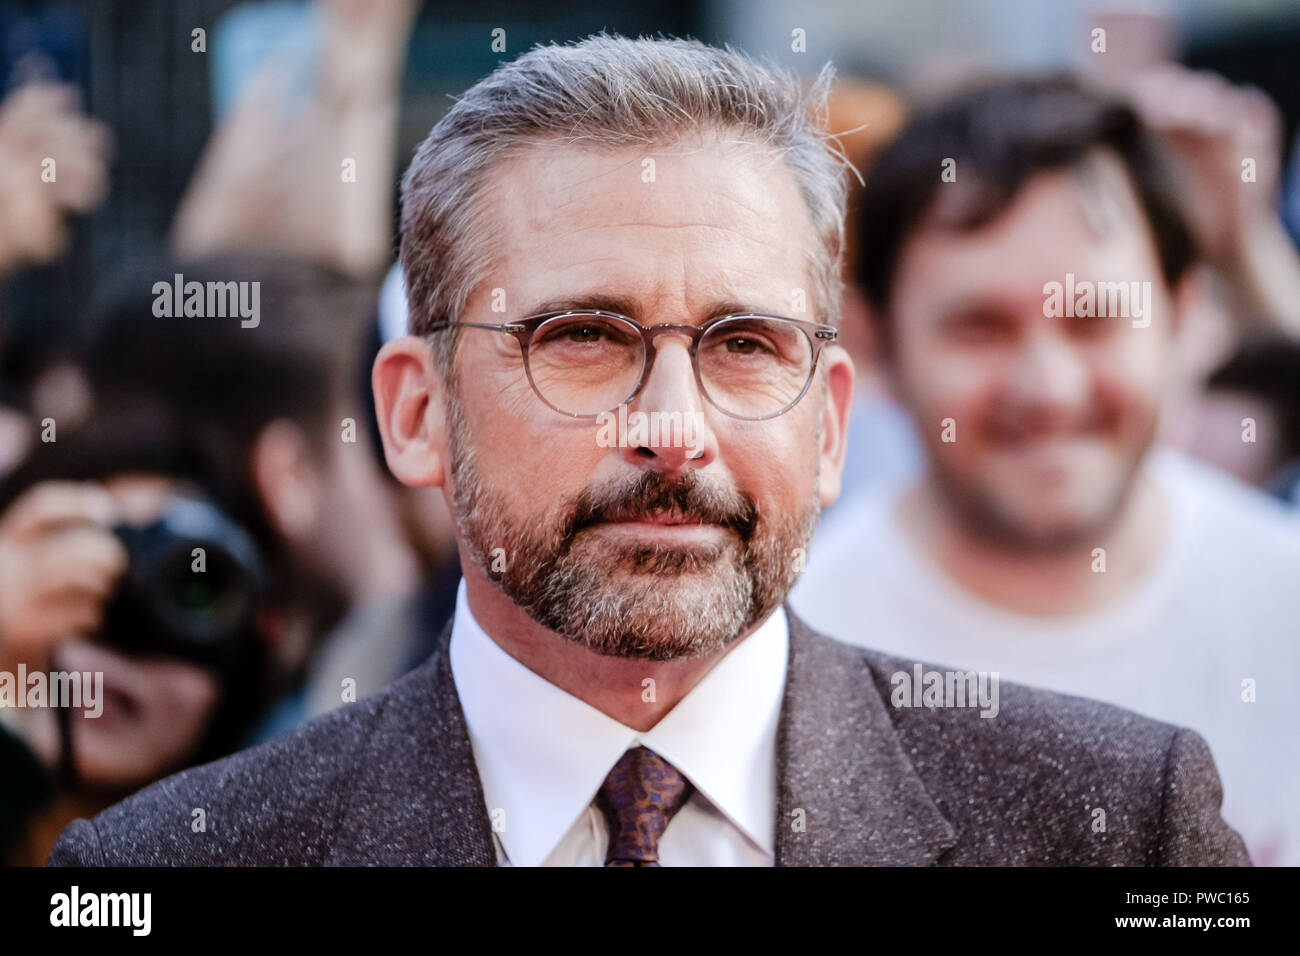 Actor Steve Carell at the London Film Festival Screening of Beautiful Boy on Saturday 13 October 2018 held at Cineworld Leicester Square, London. Pictured: Steve Carell. Picture by Julie Edwards. - Stock Image